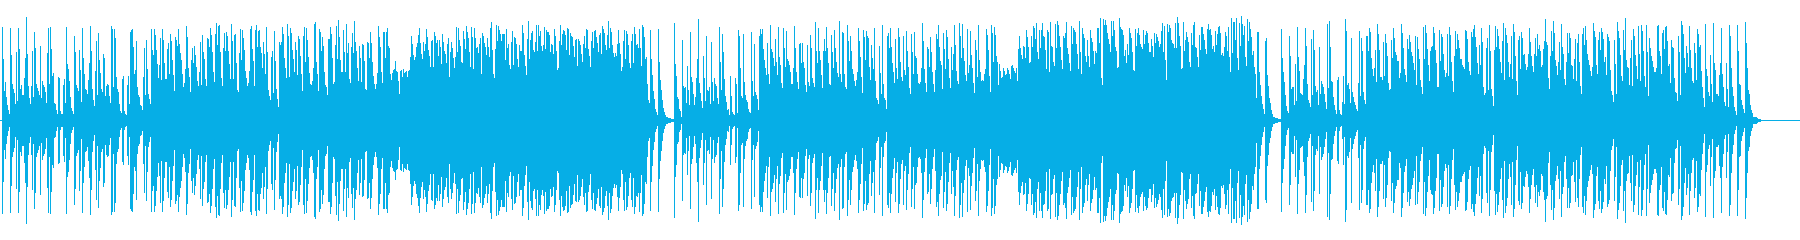 Comical BGM like Summer Festival's reproduced waveform